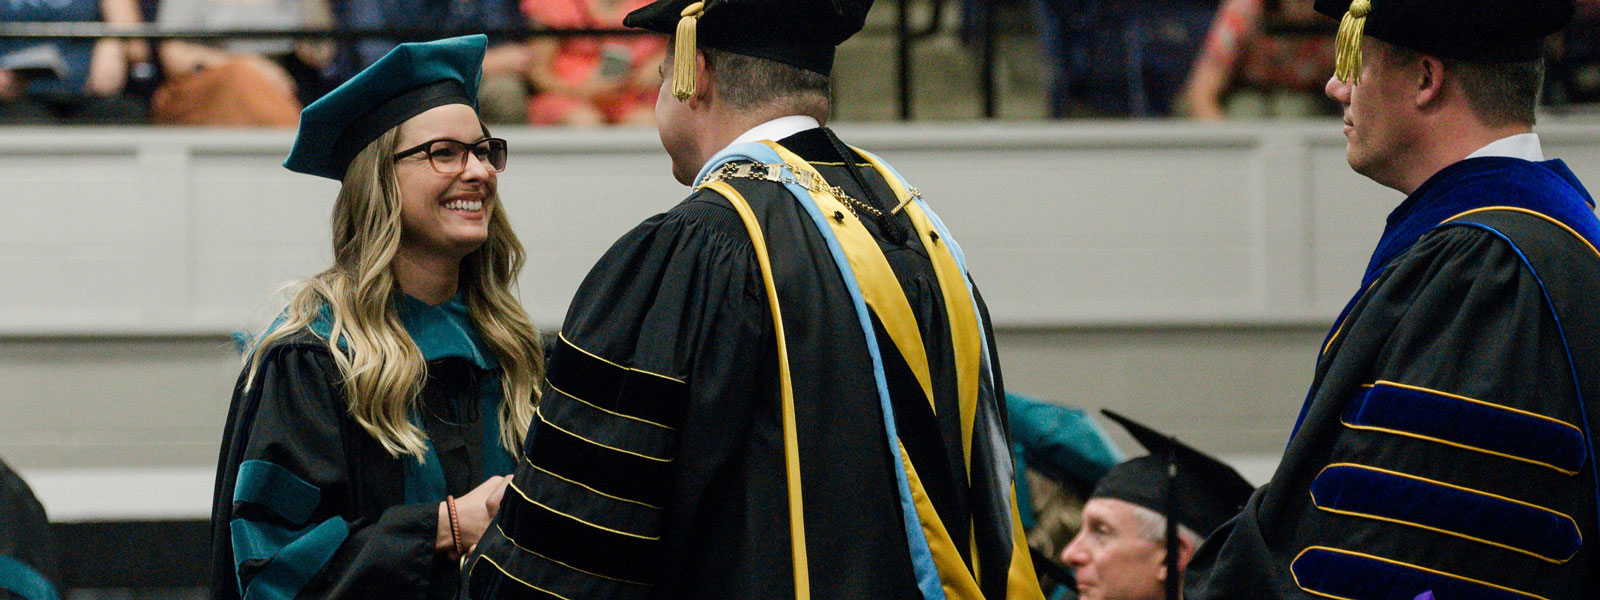 physical therapy student receives diploma at commencement ceremony